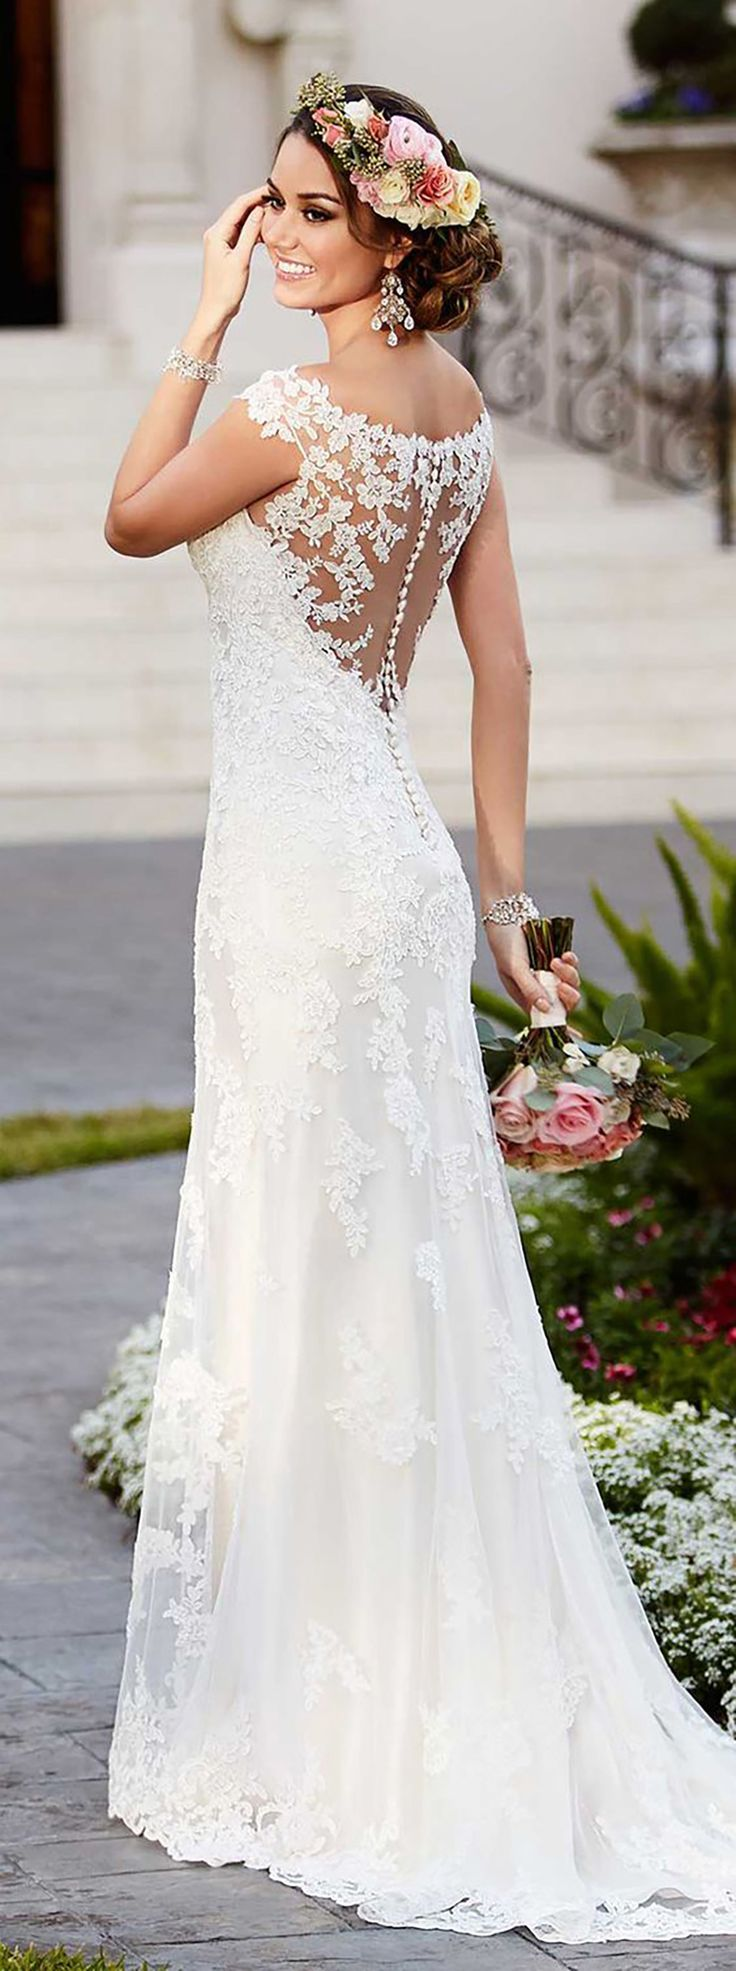 Off the shoulder beach wedding dresses  most popular wedding dresses pinterest  Wedding Dresses